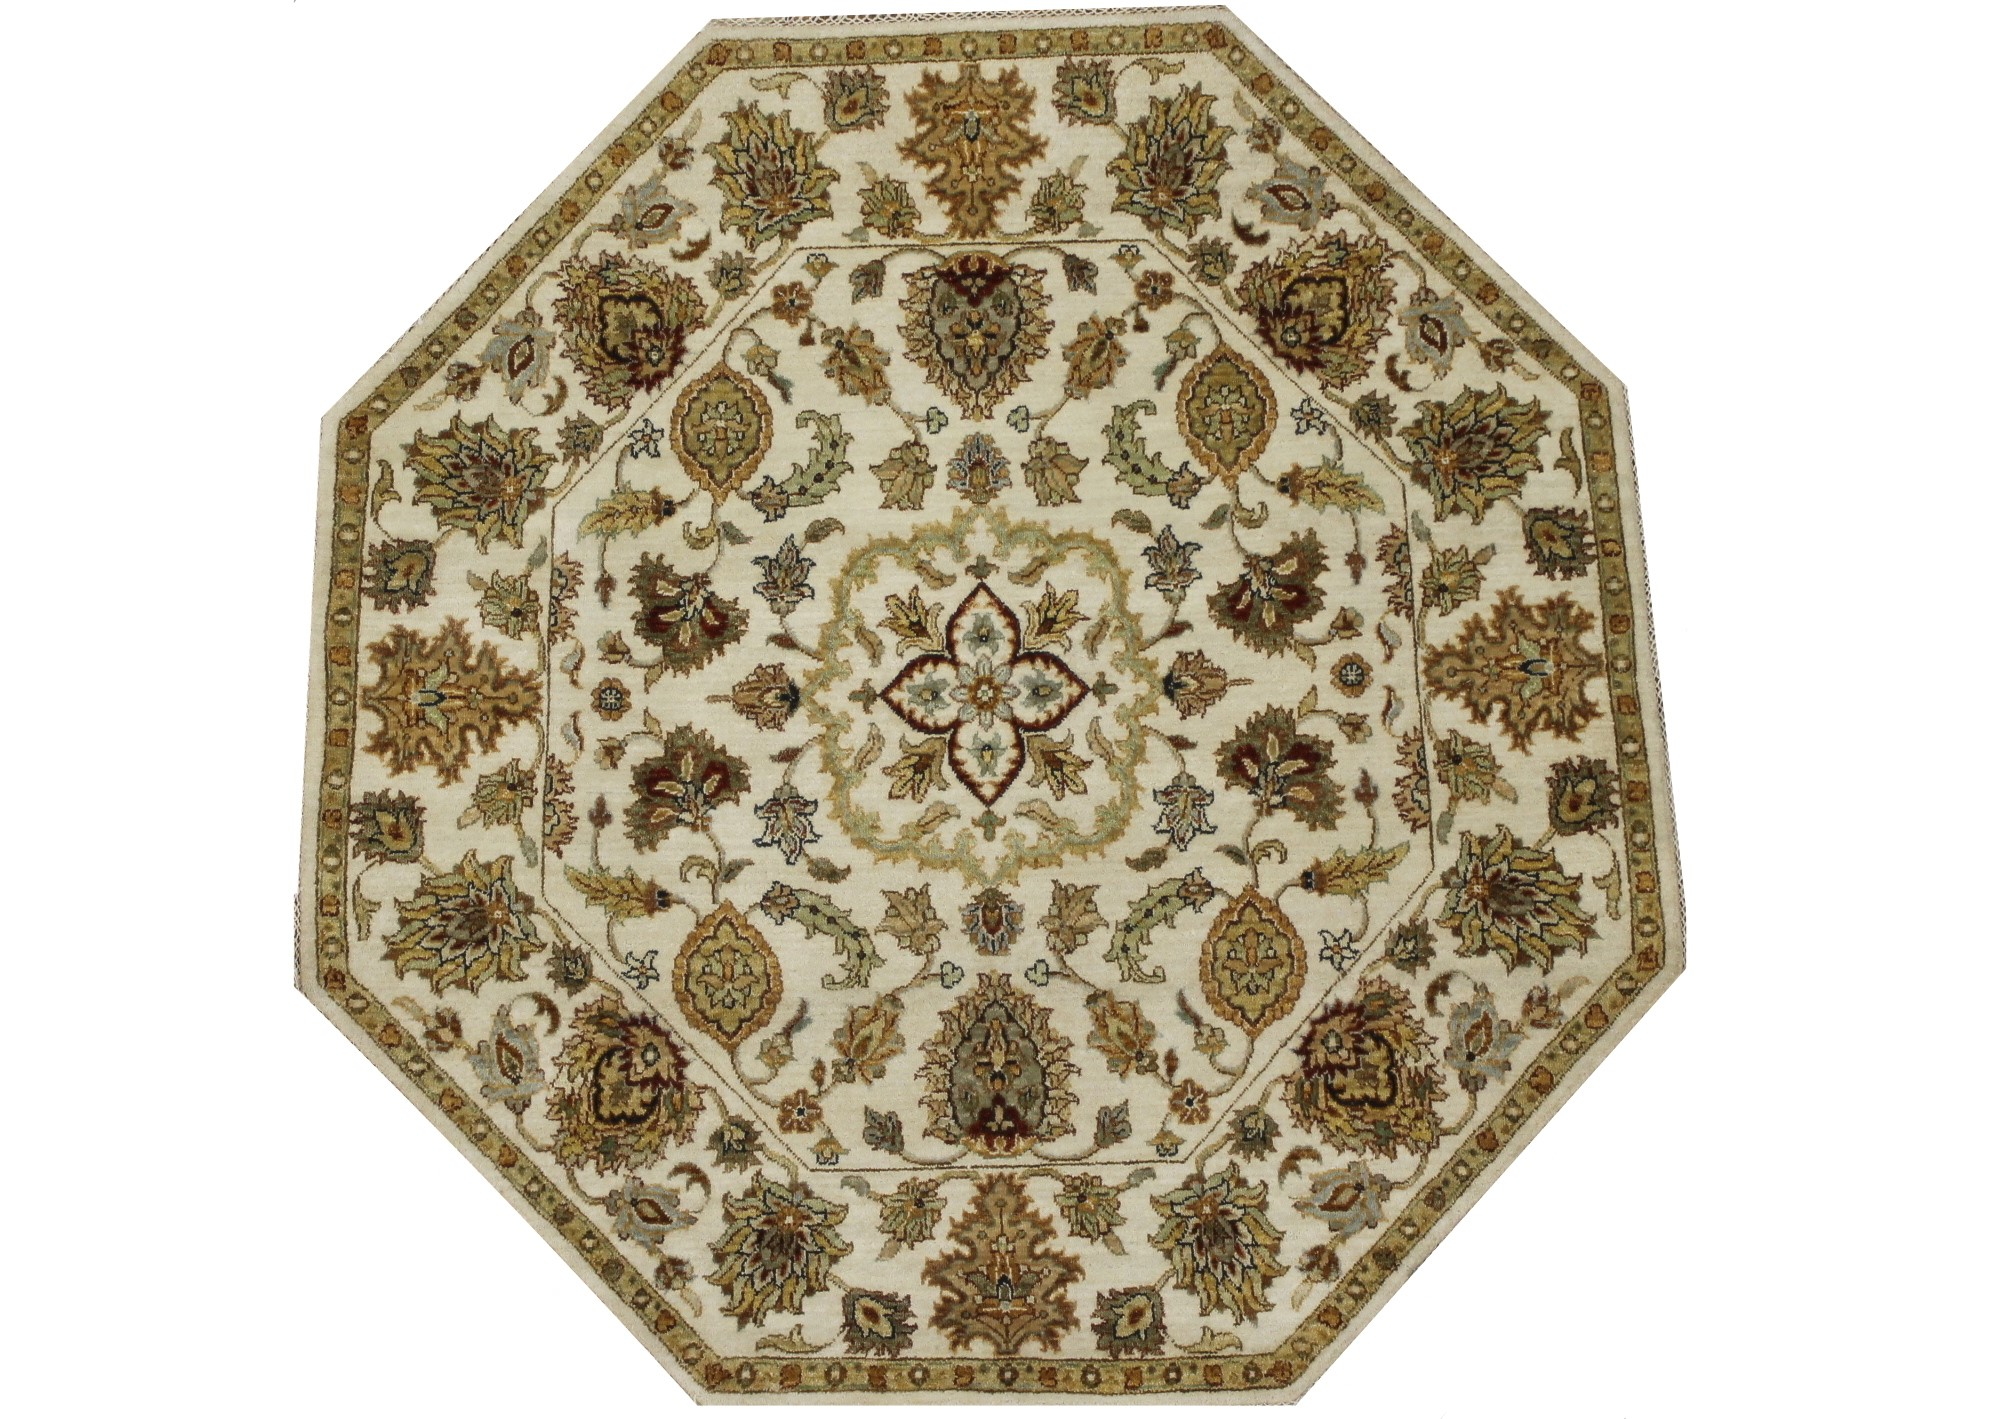 Traditional Hand Knotted Wool Area Rug - MR022412